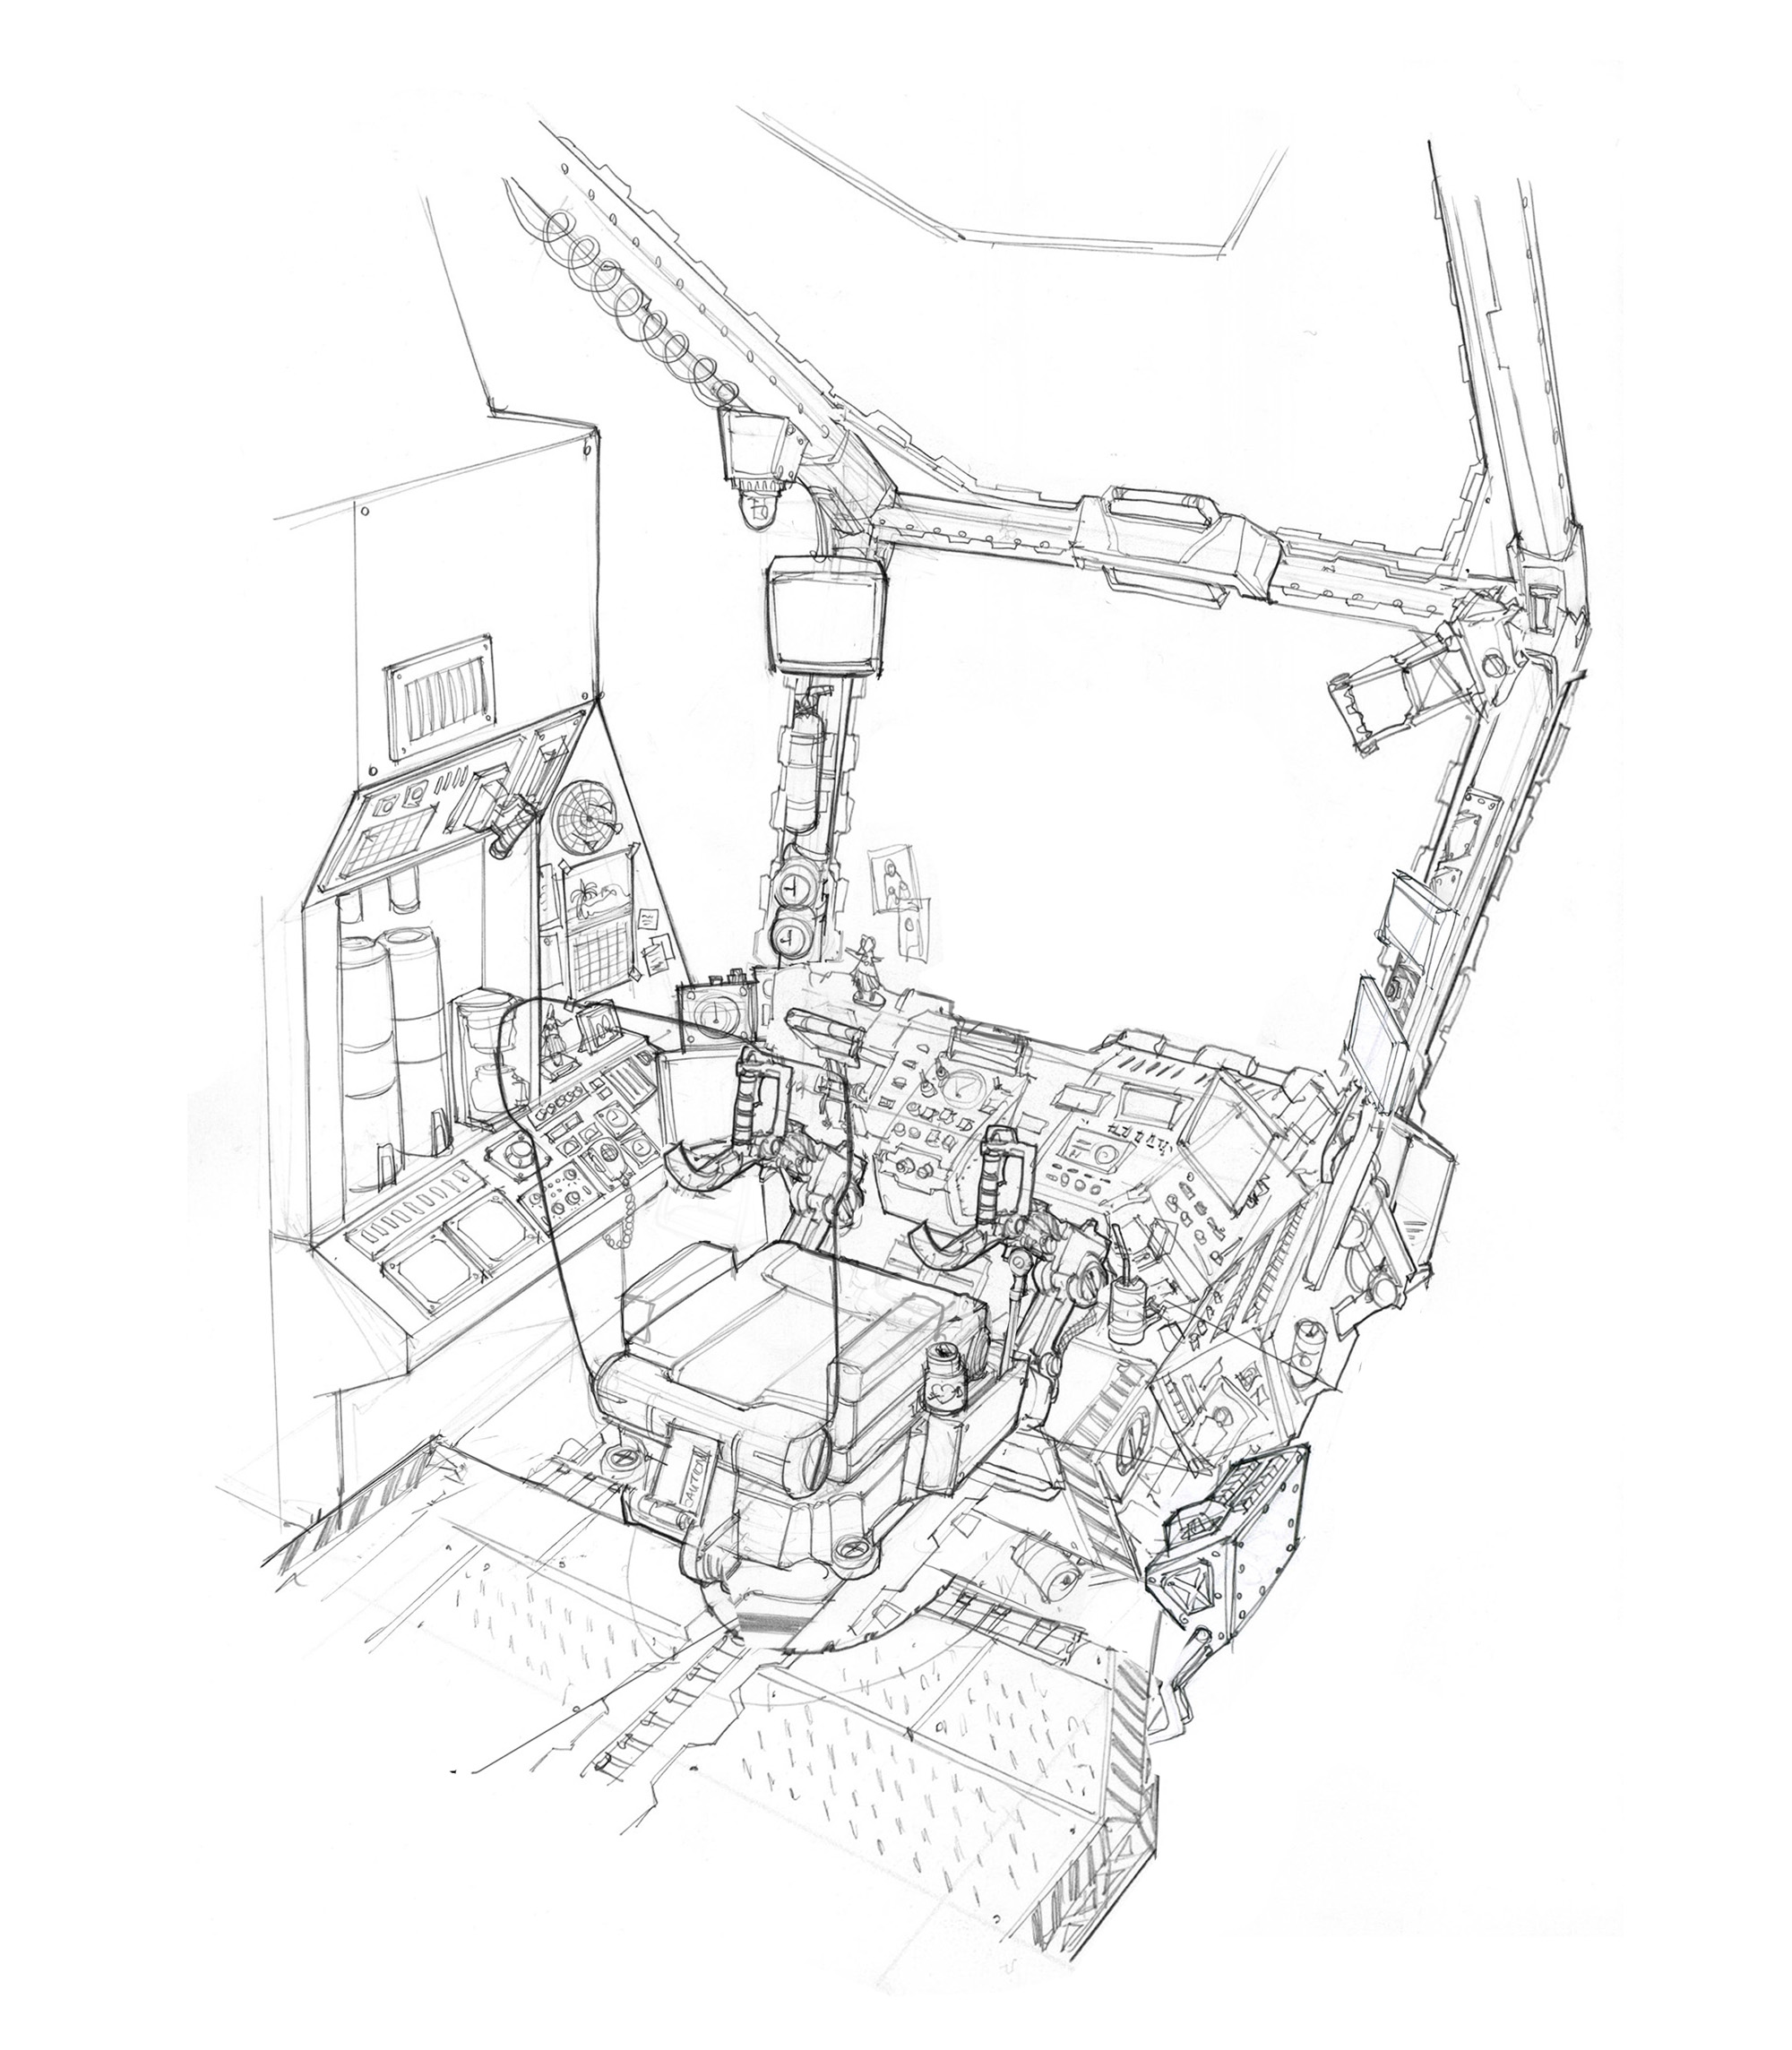 mech_interior_sketch.jpg